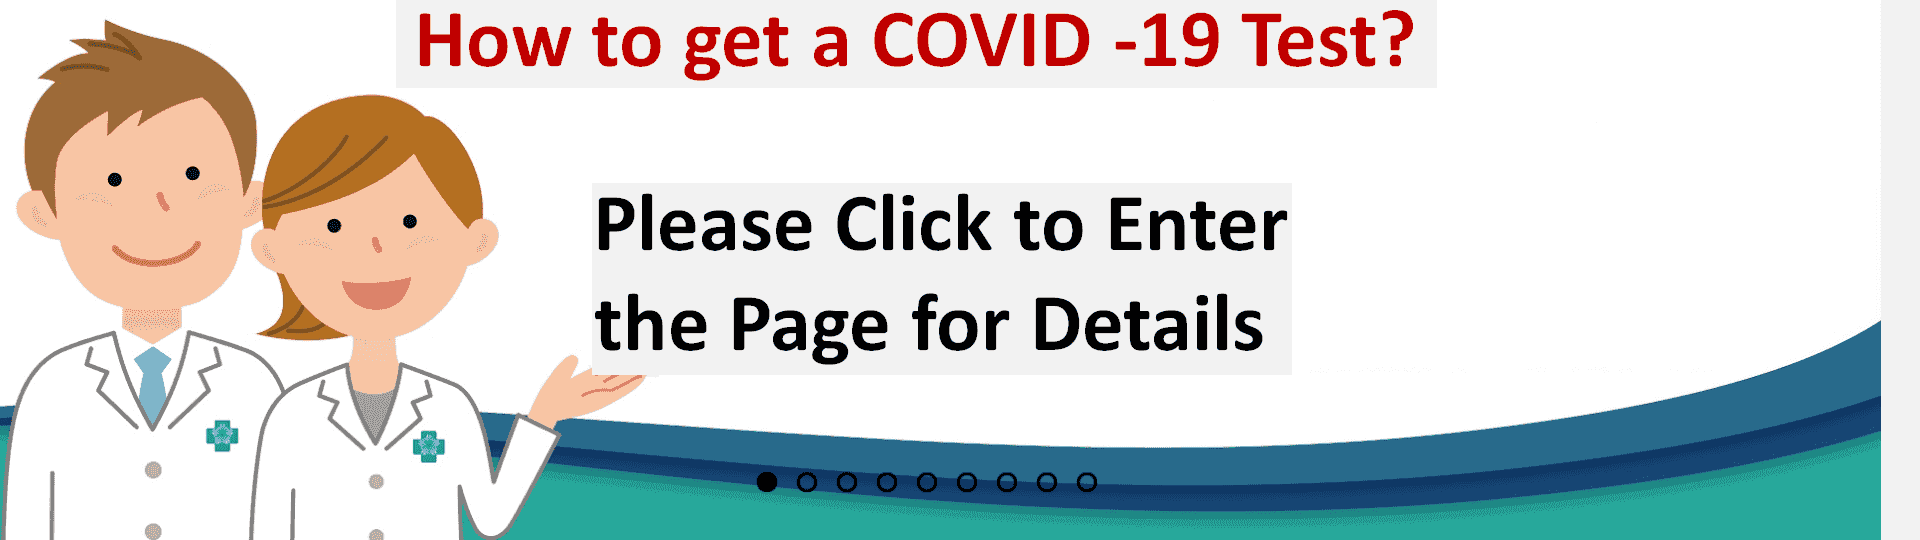 How to get a COVID -19 Test?